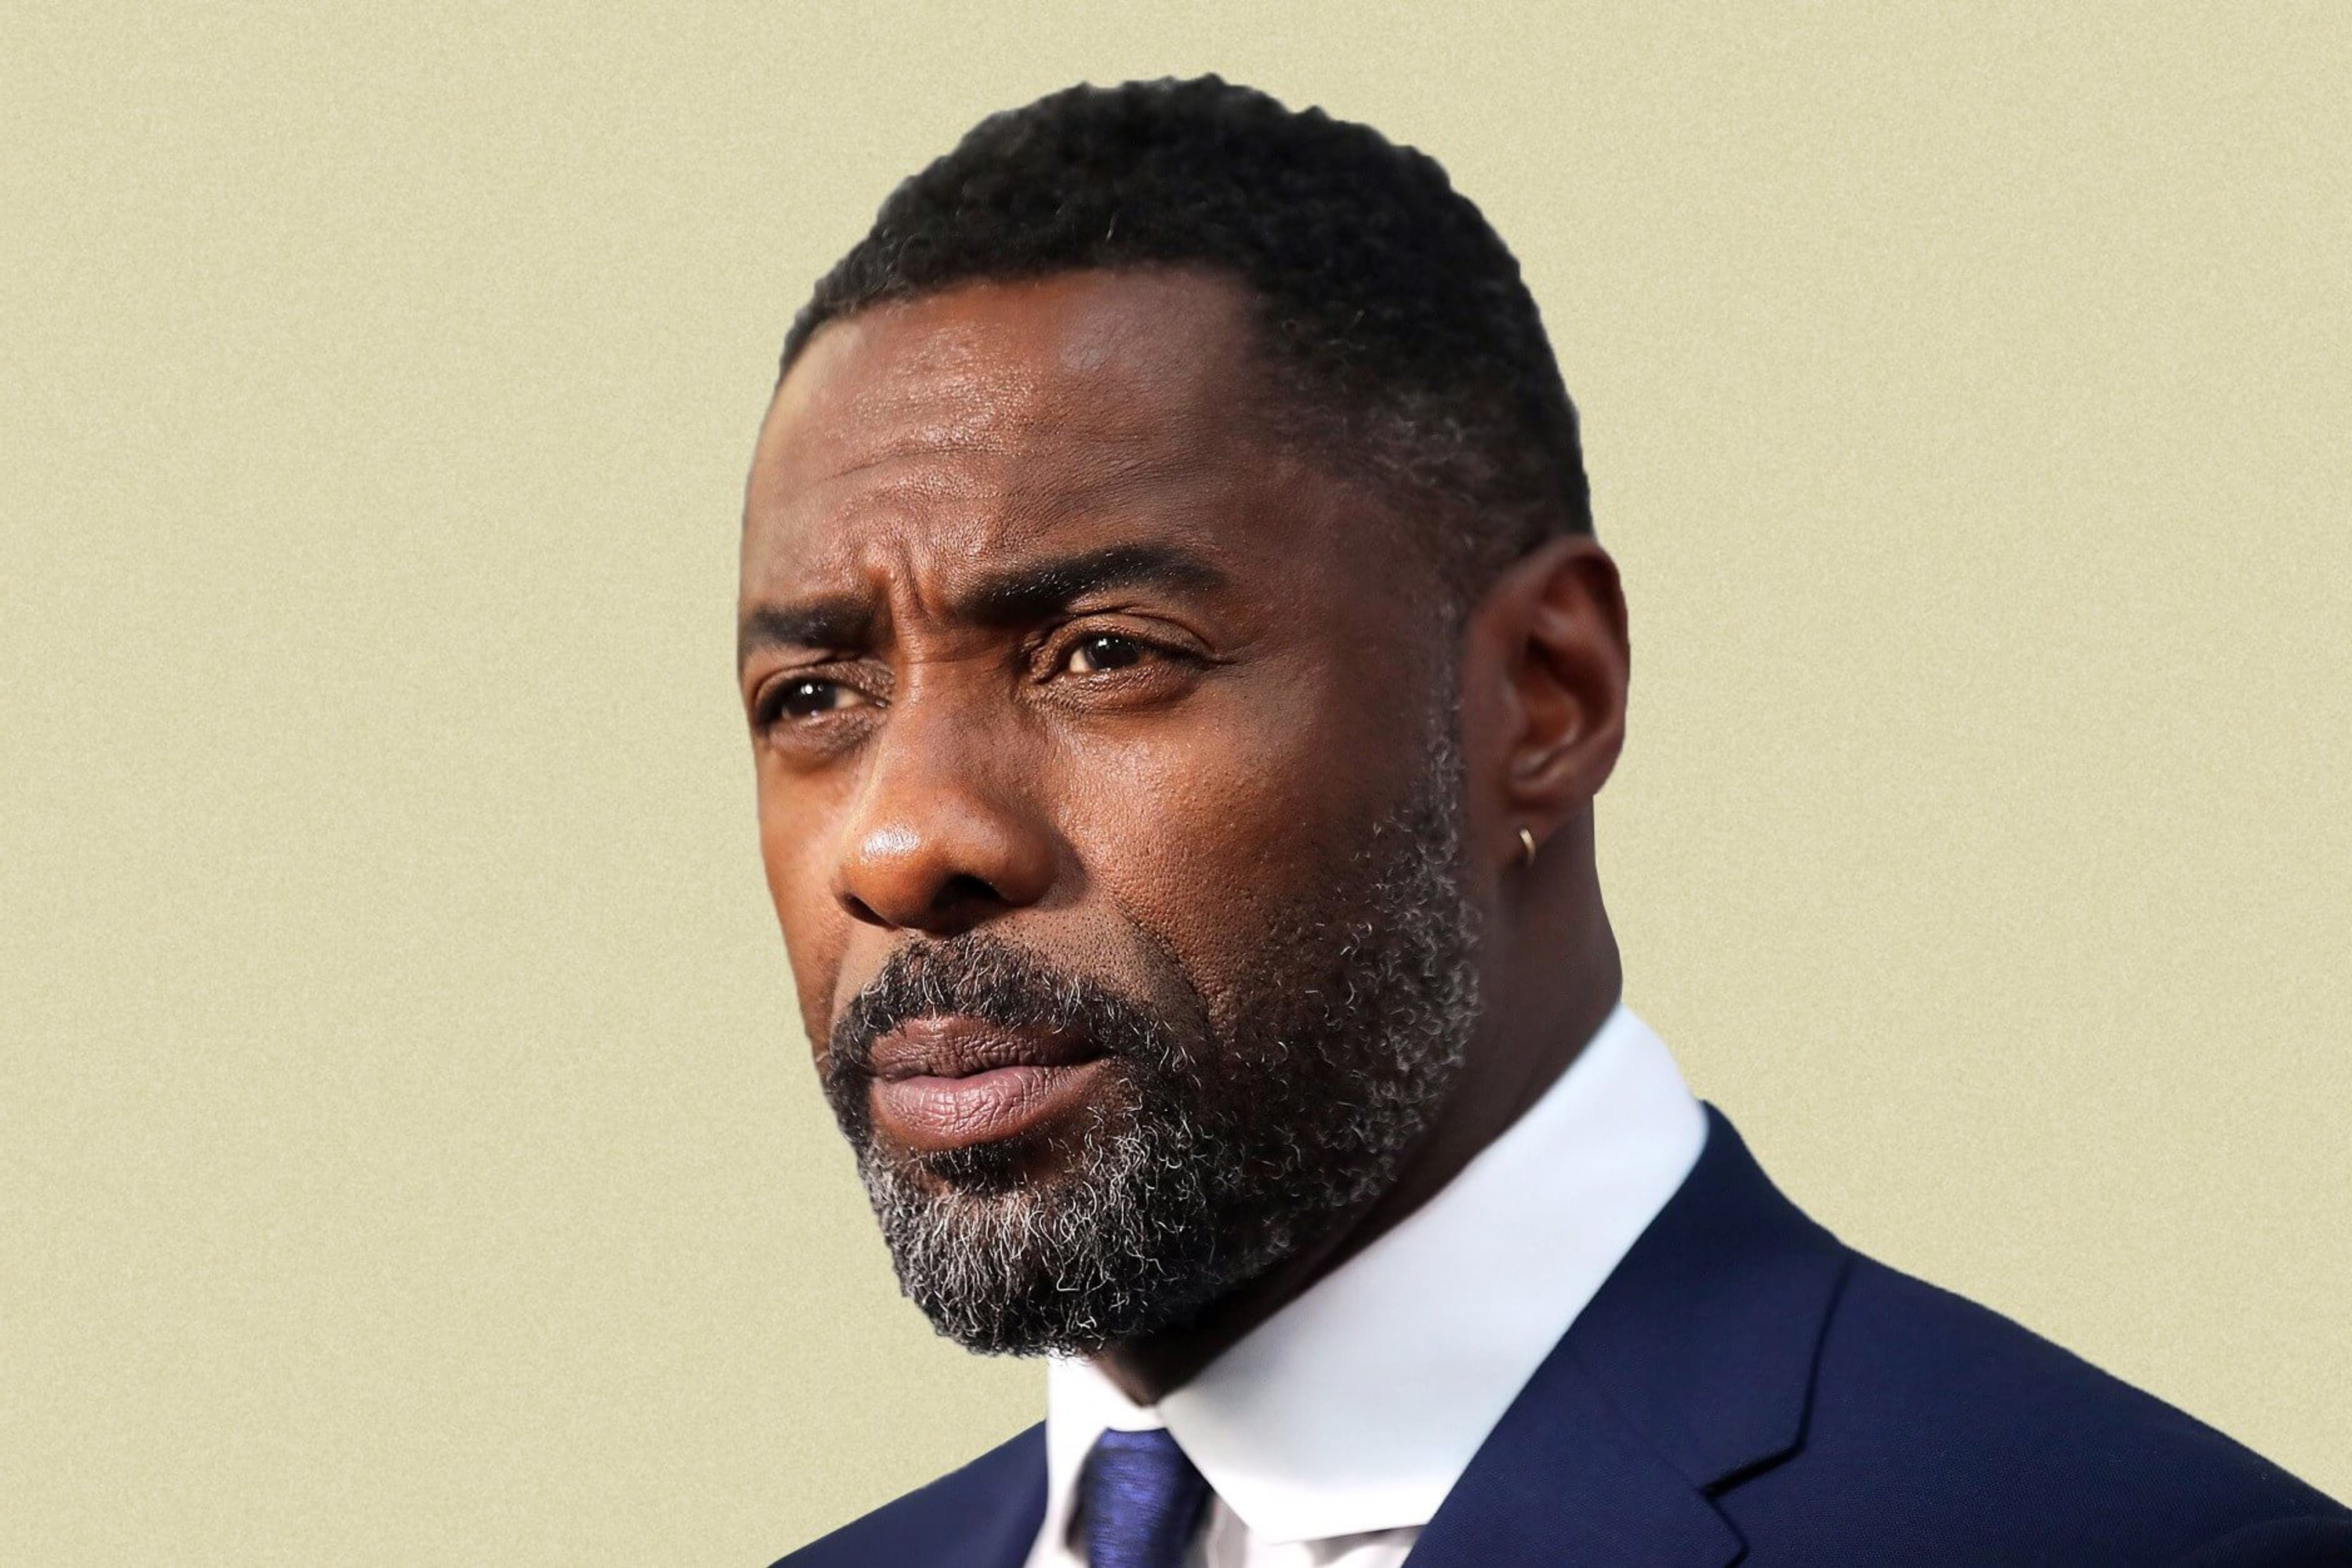 A well-known black man with a beard.